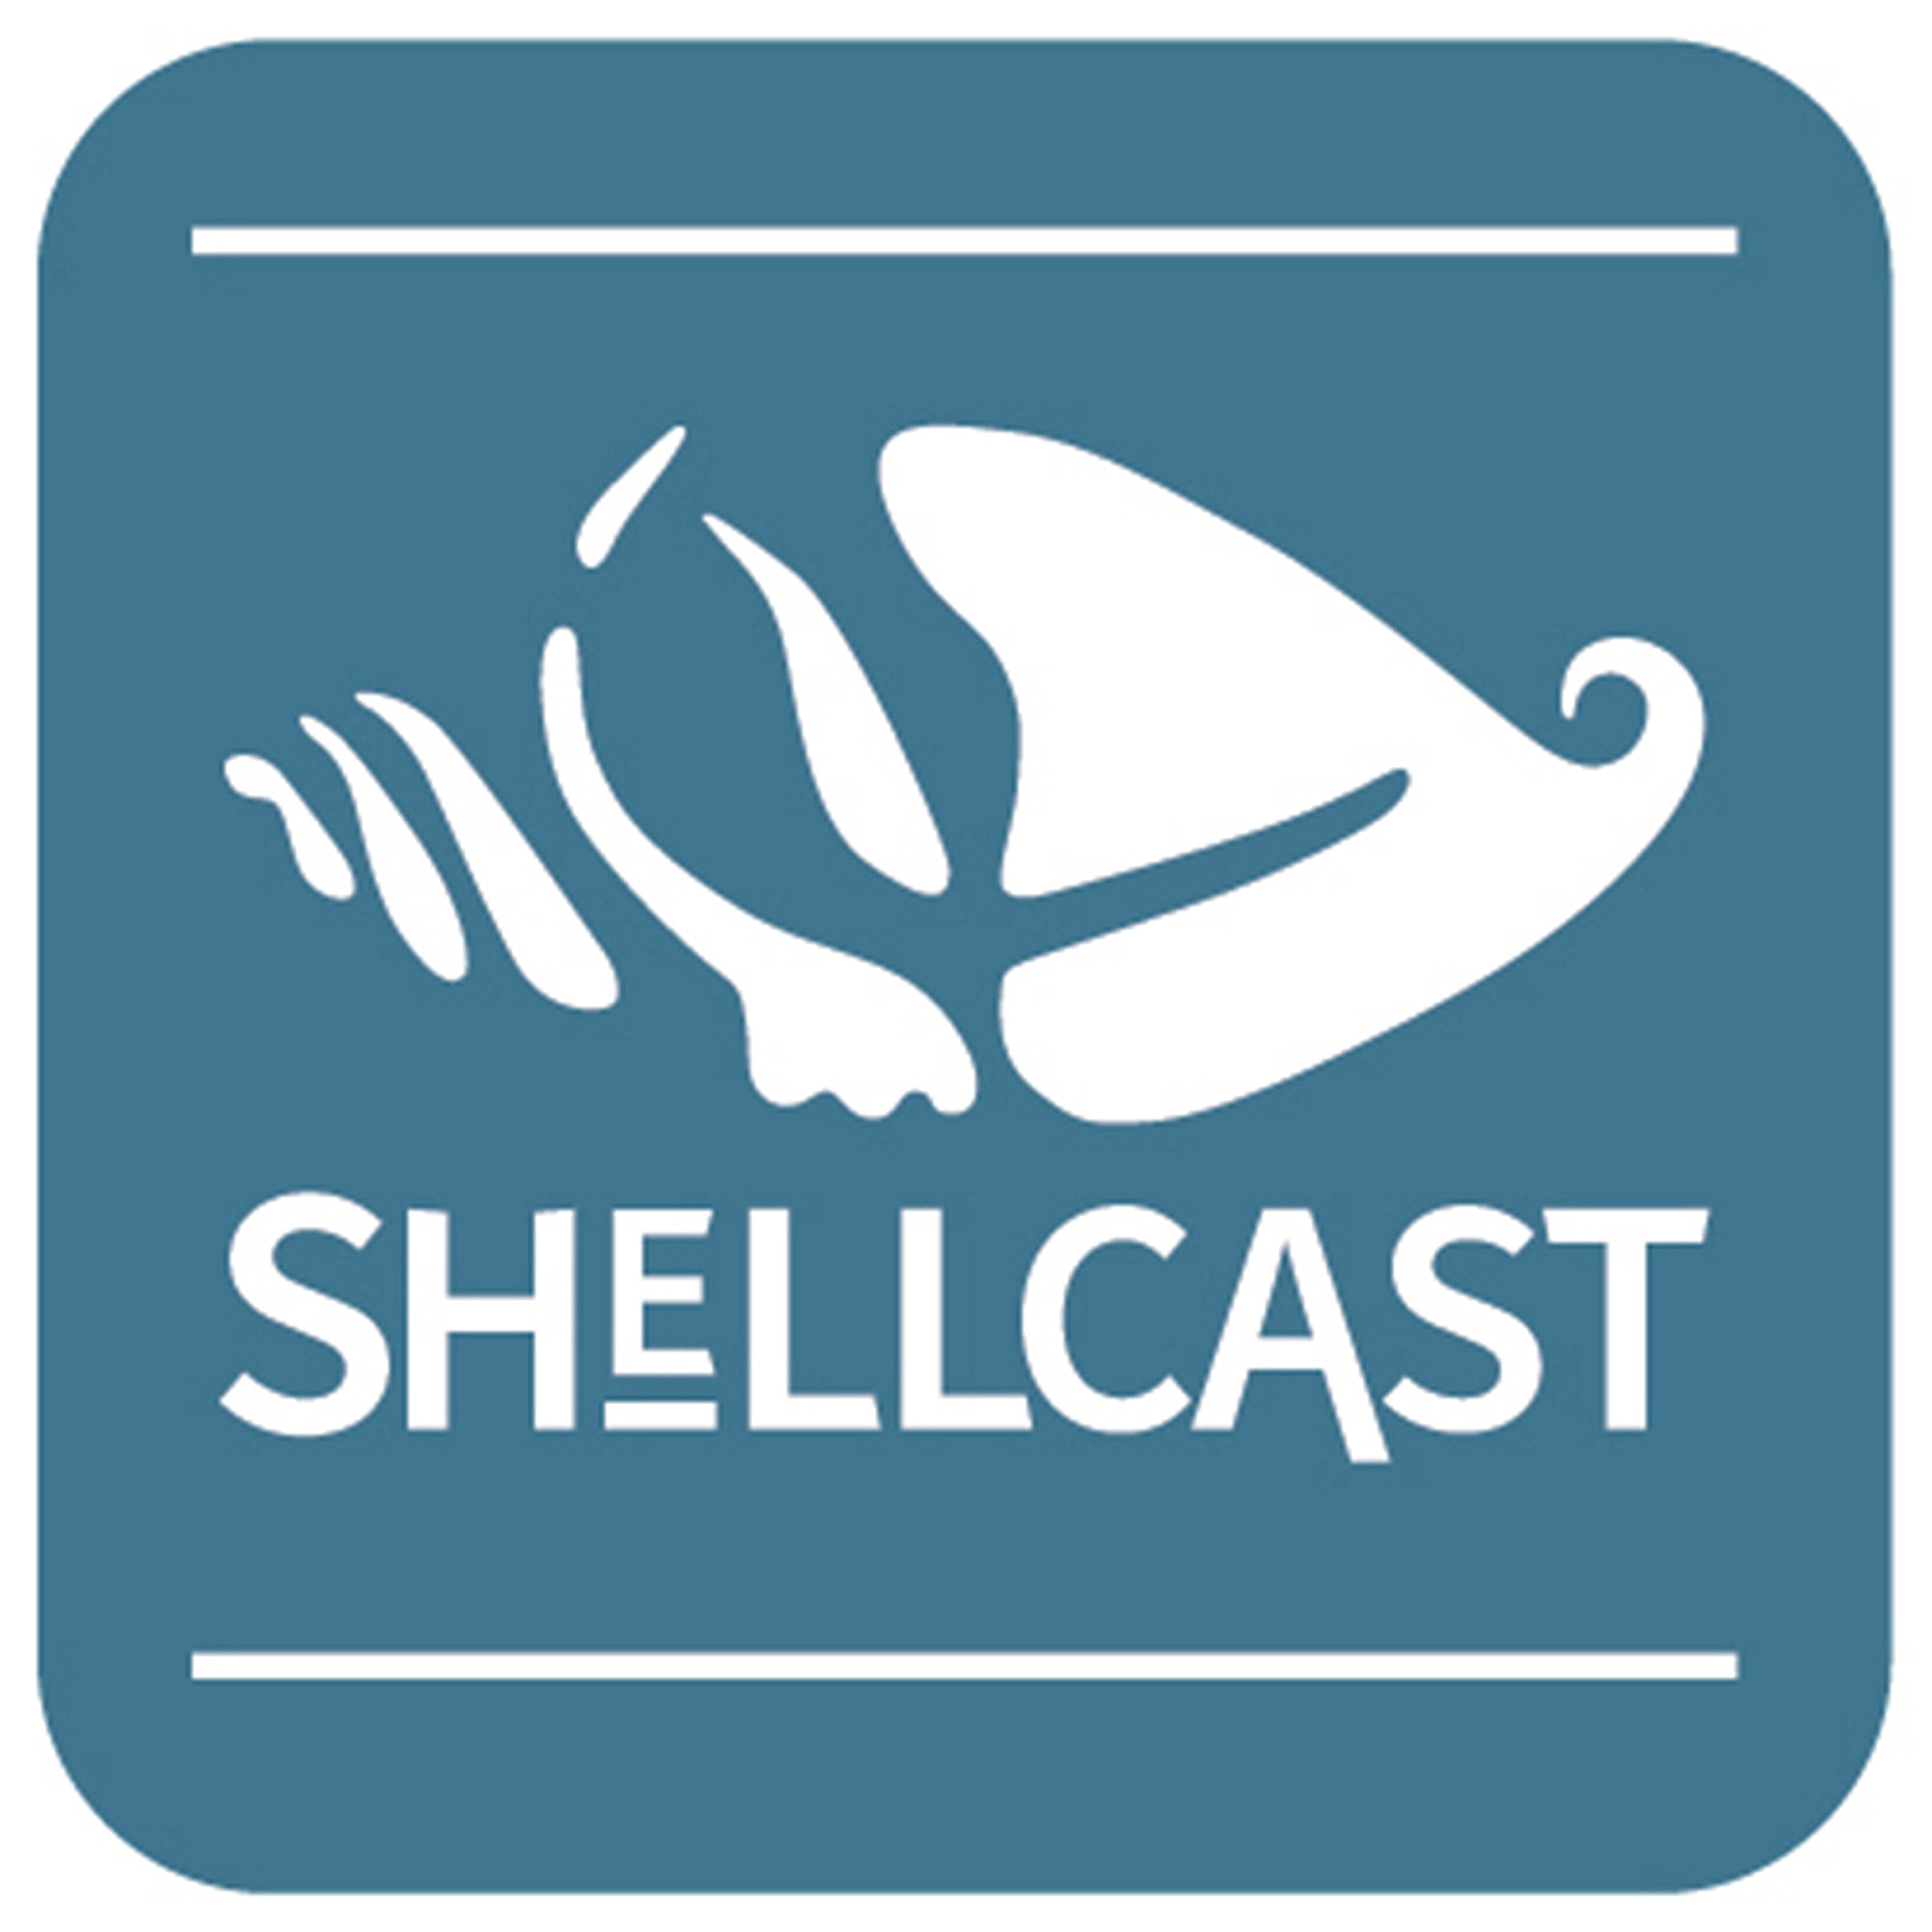 Listen to Shellcast